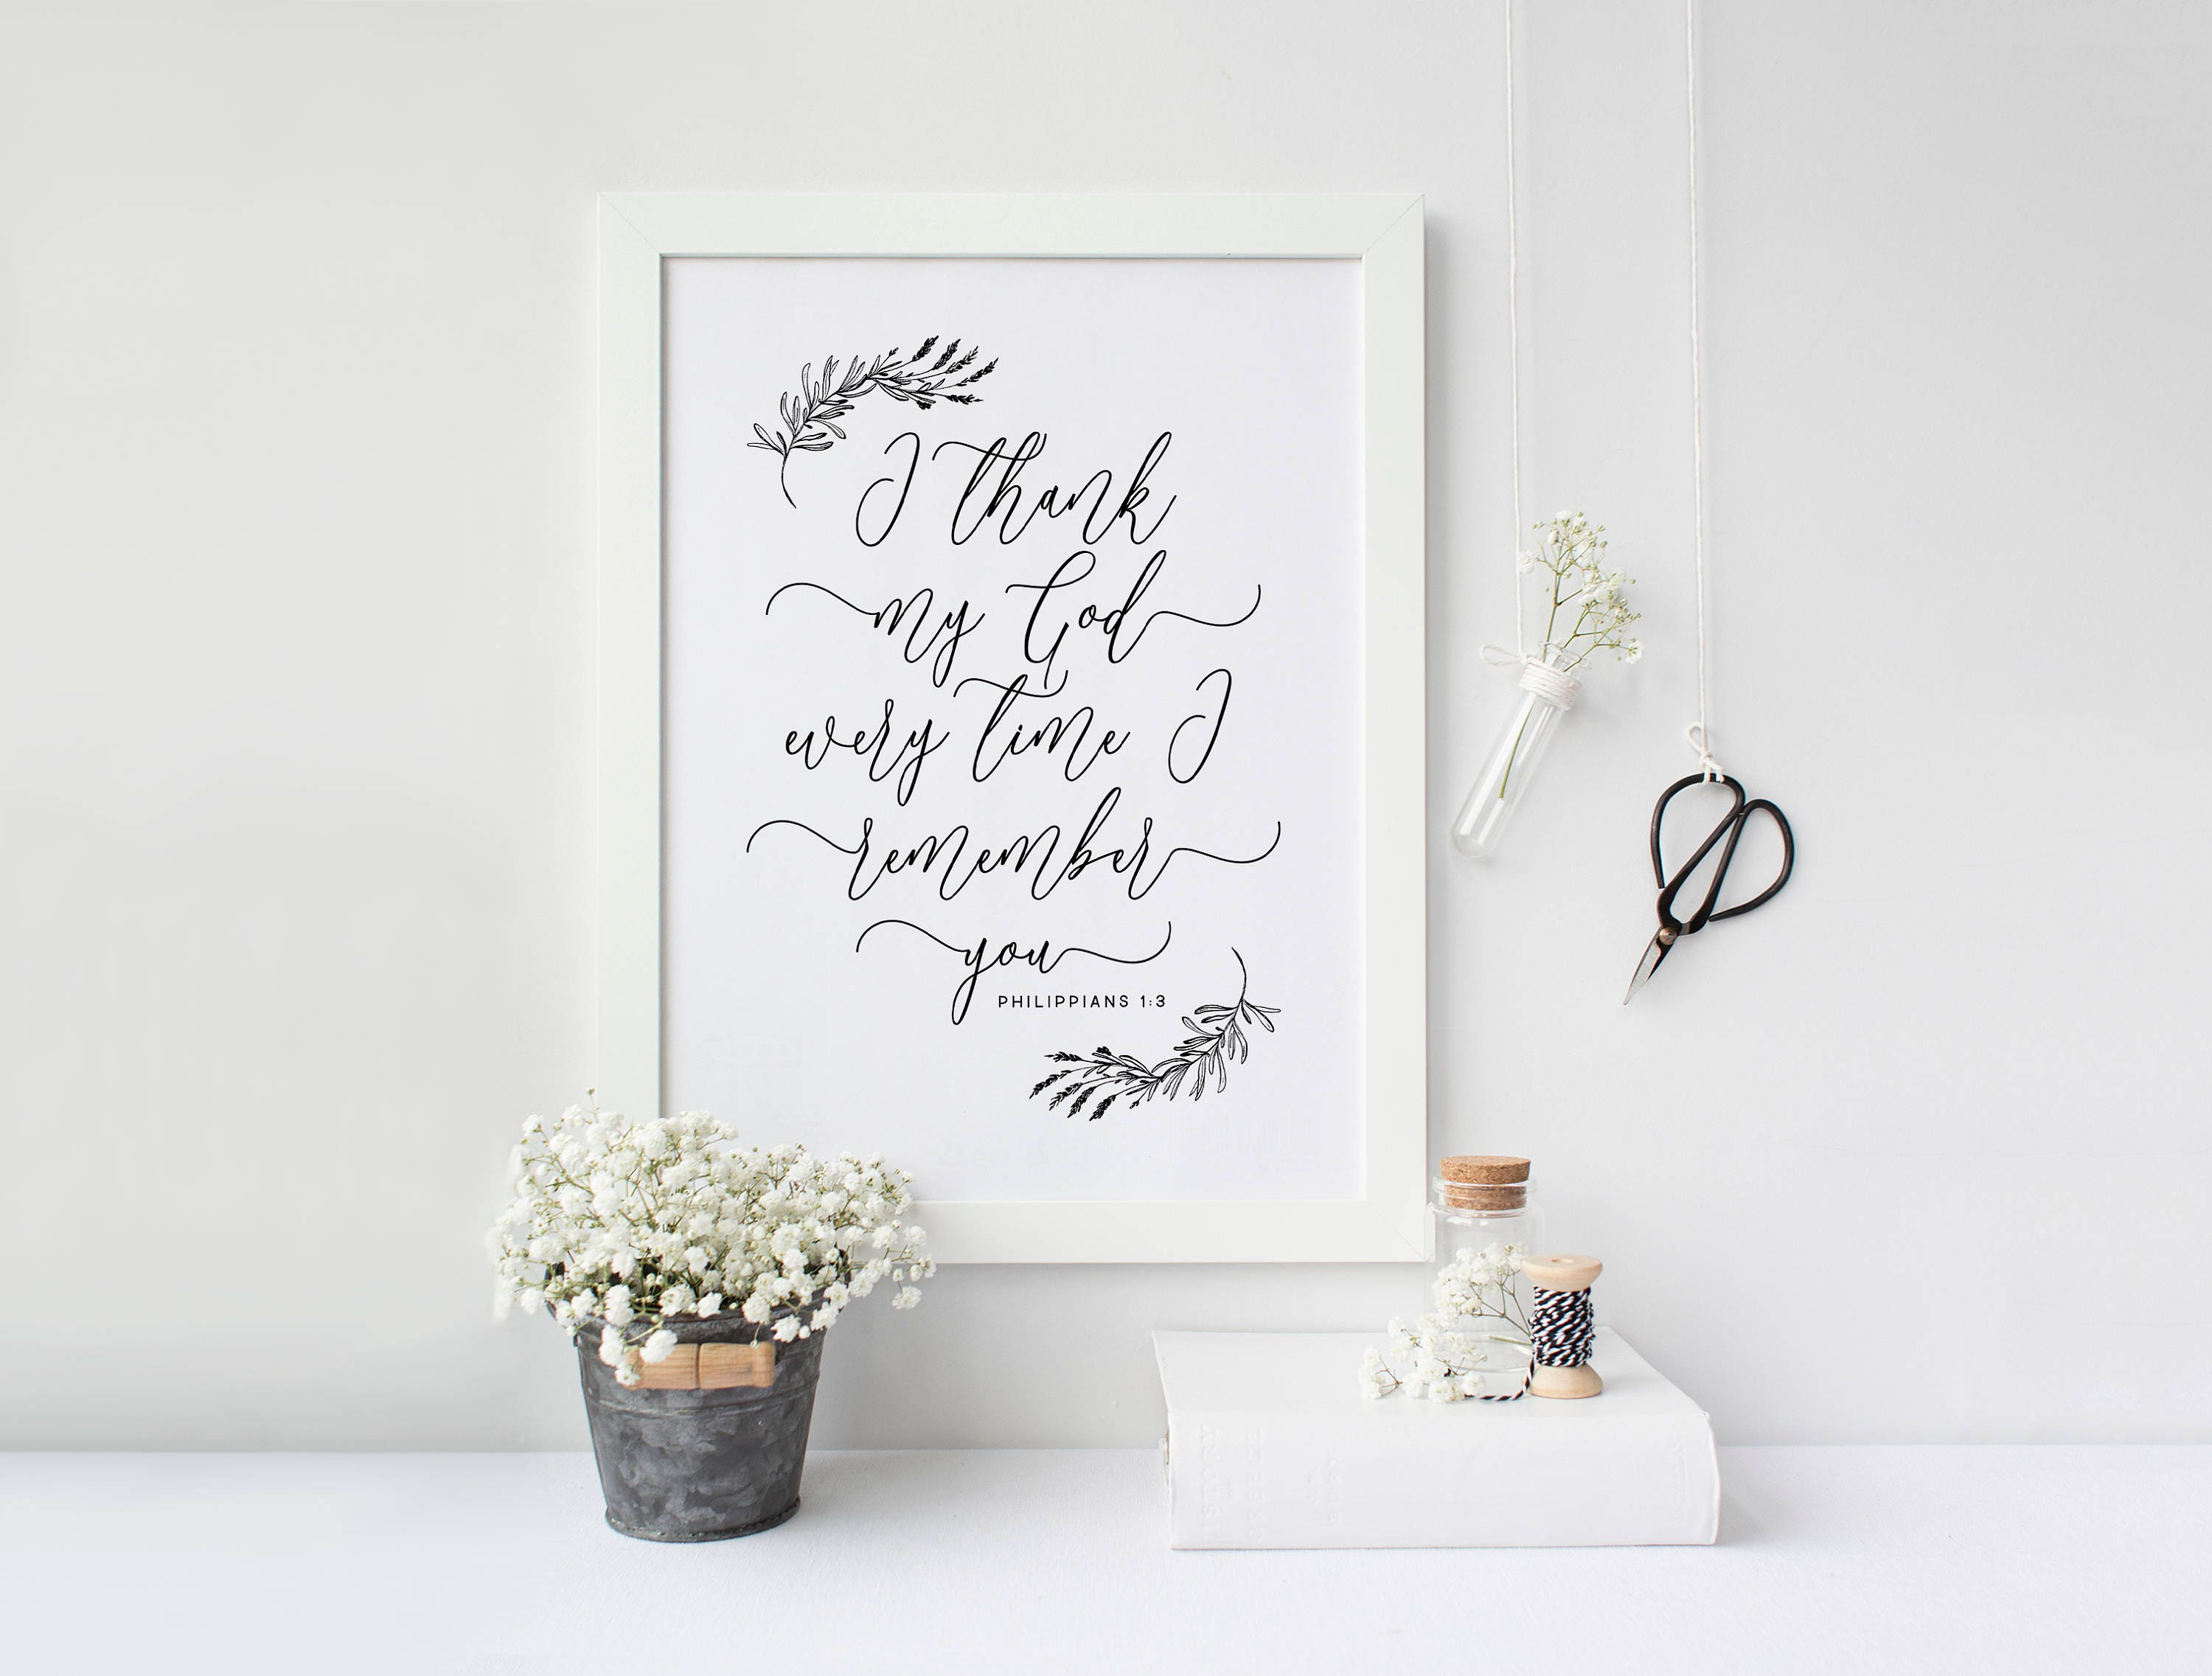 Philippians 13 Printable Marriage Bible Verse Love Quote